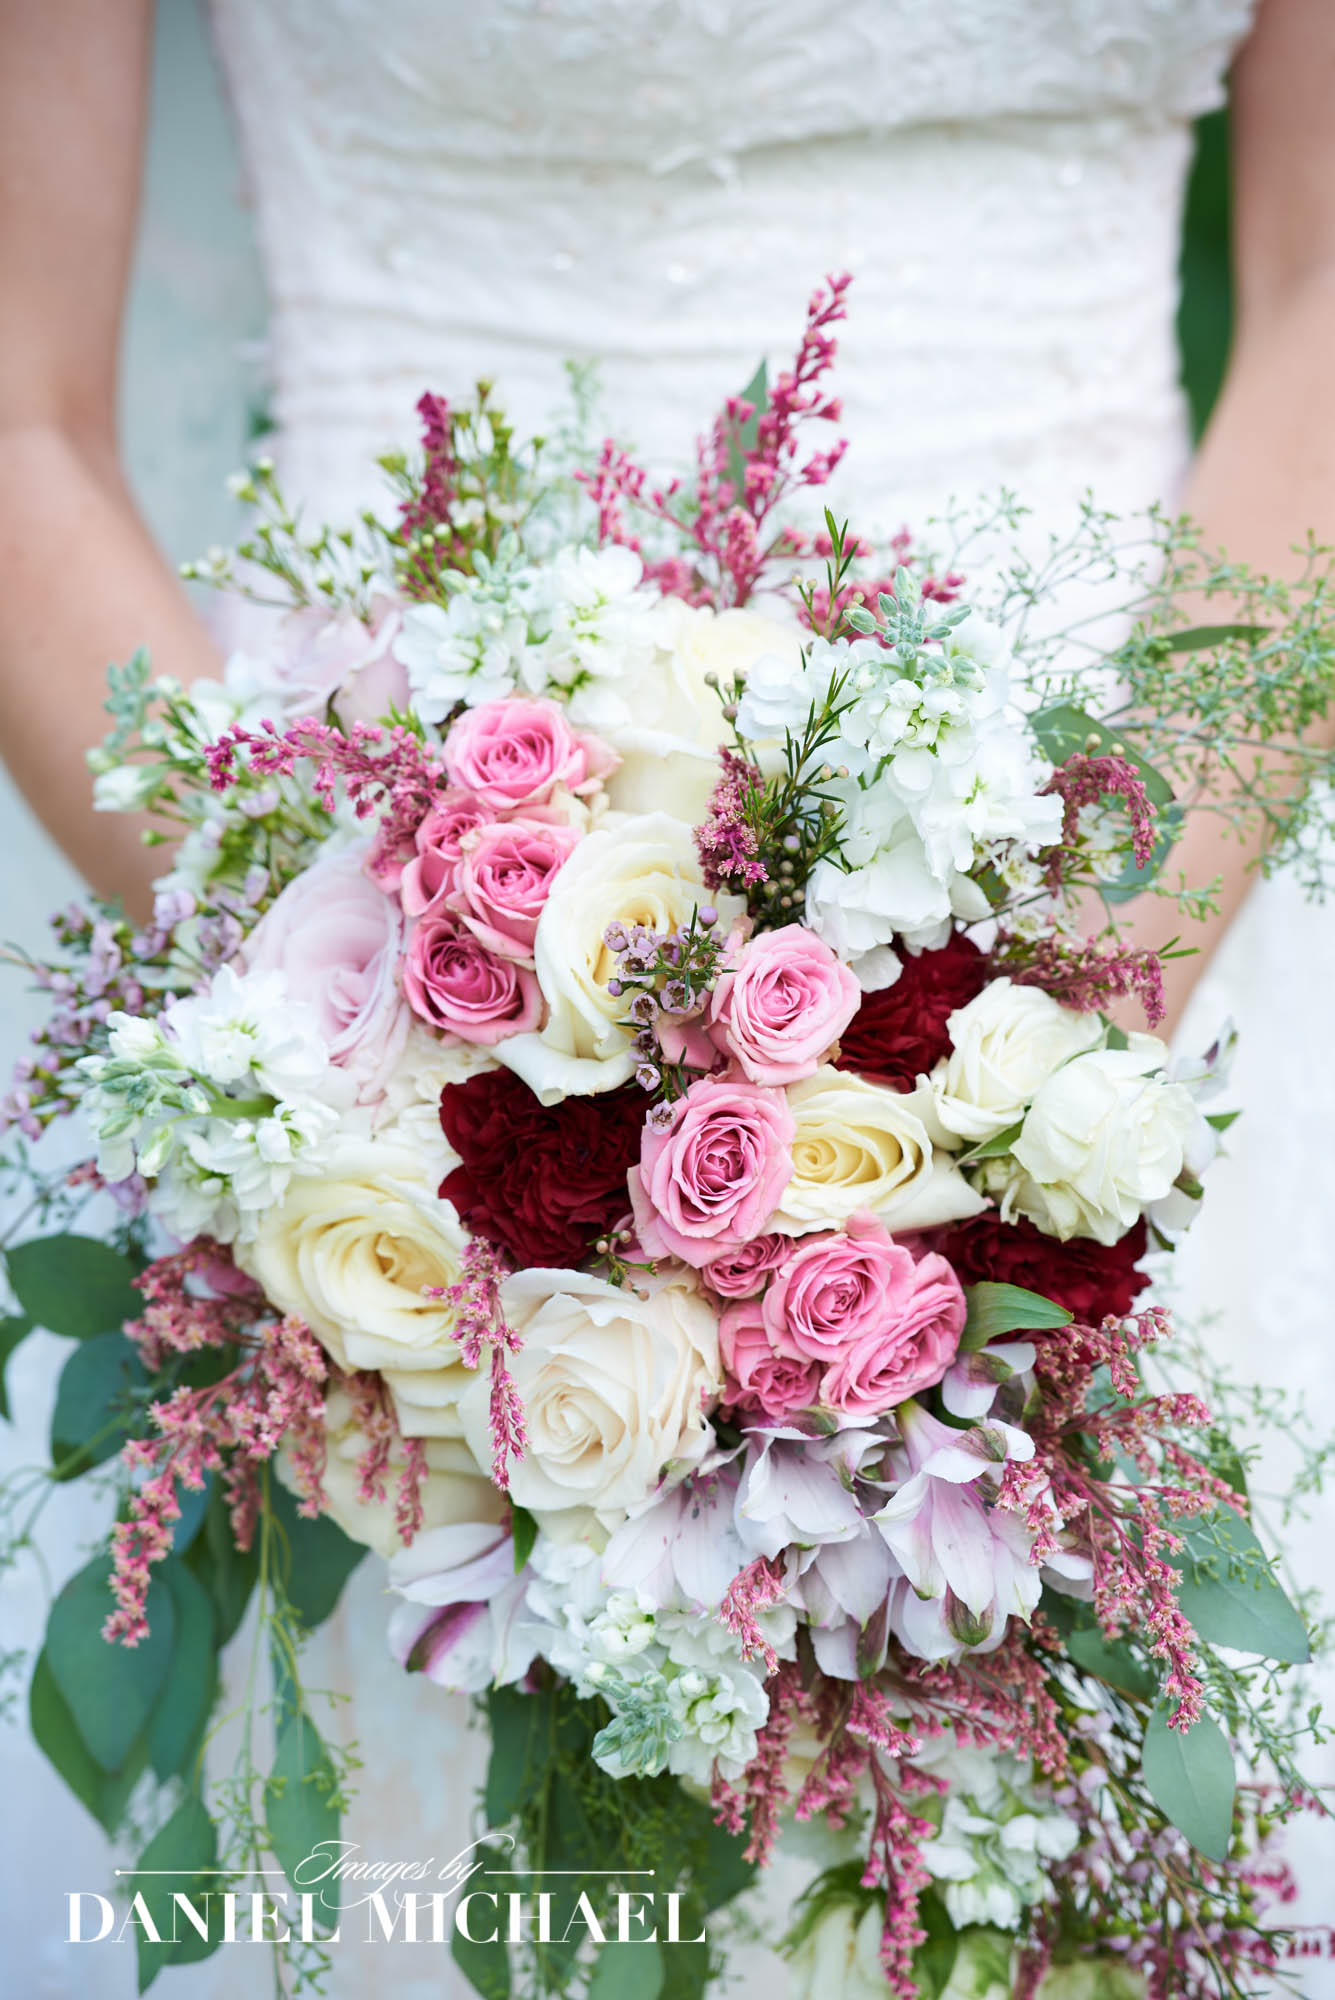 Wedding Florist Photos